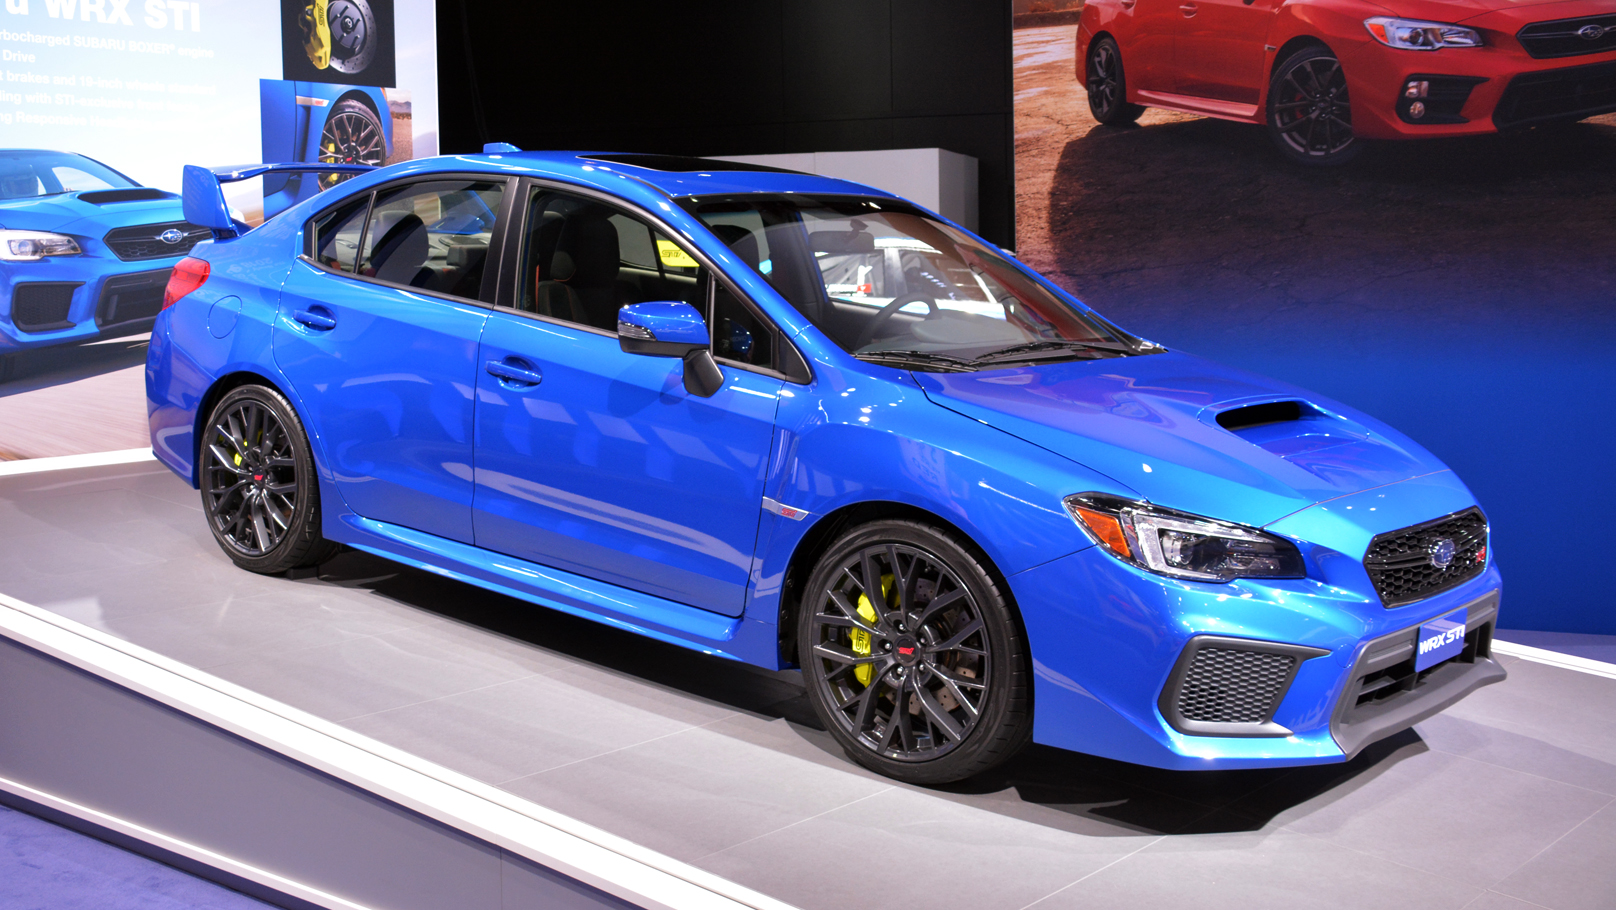 The Most Trackworthy Cars At The 2017 Detroit Auto Show